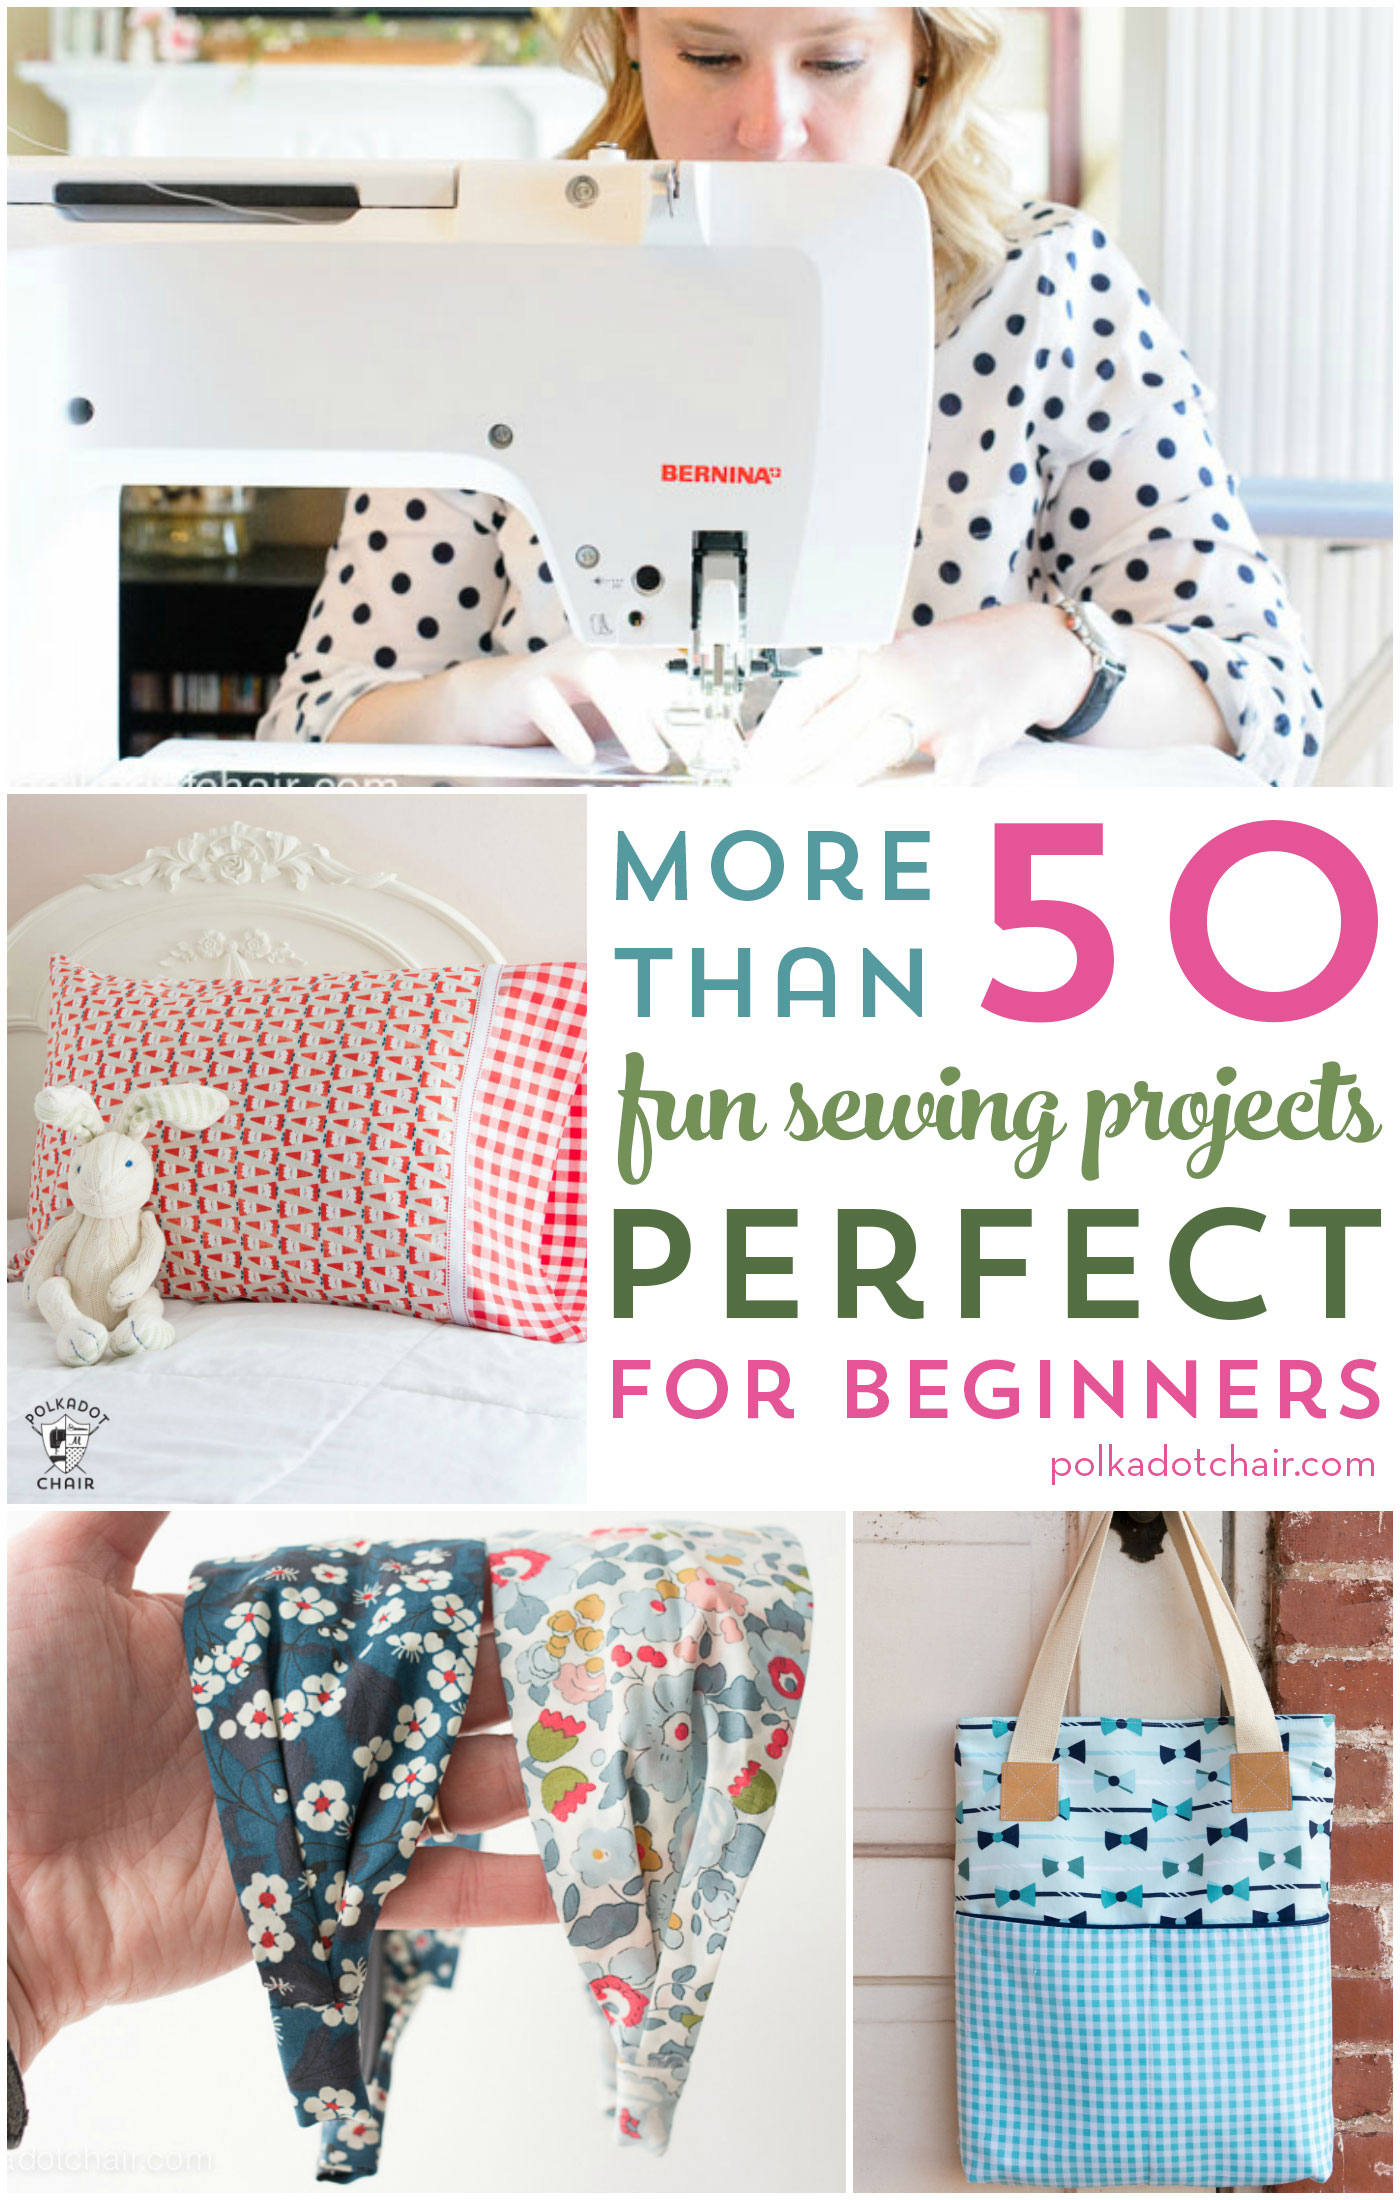 More than 50 Beginner Sewing Projects = from bags to clothes to accessories, there are so many cute things to sew on this list!